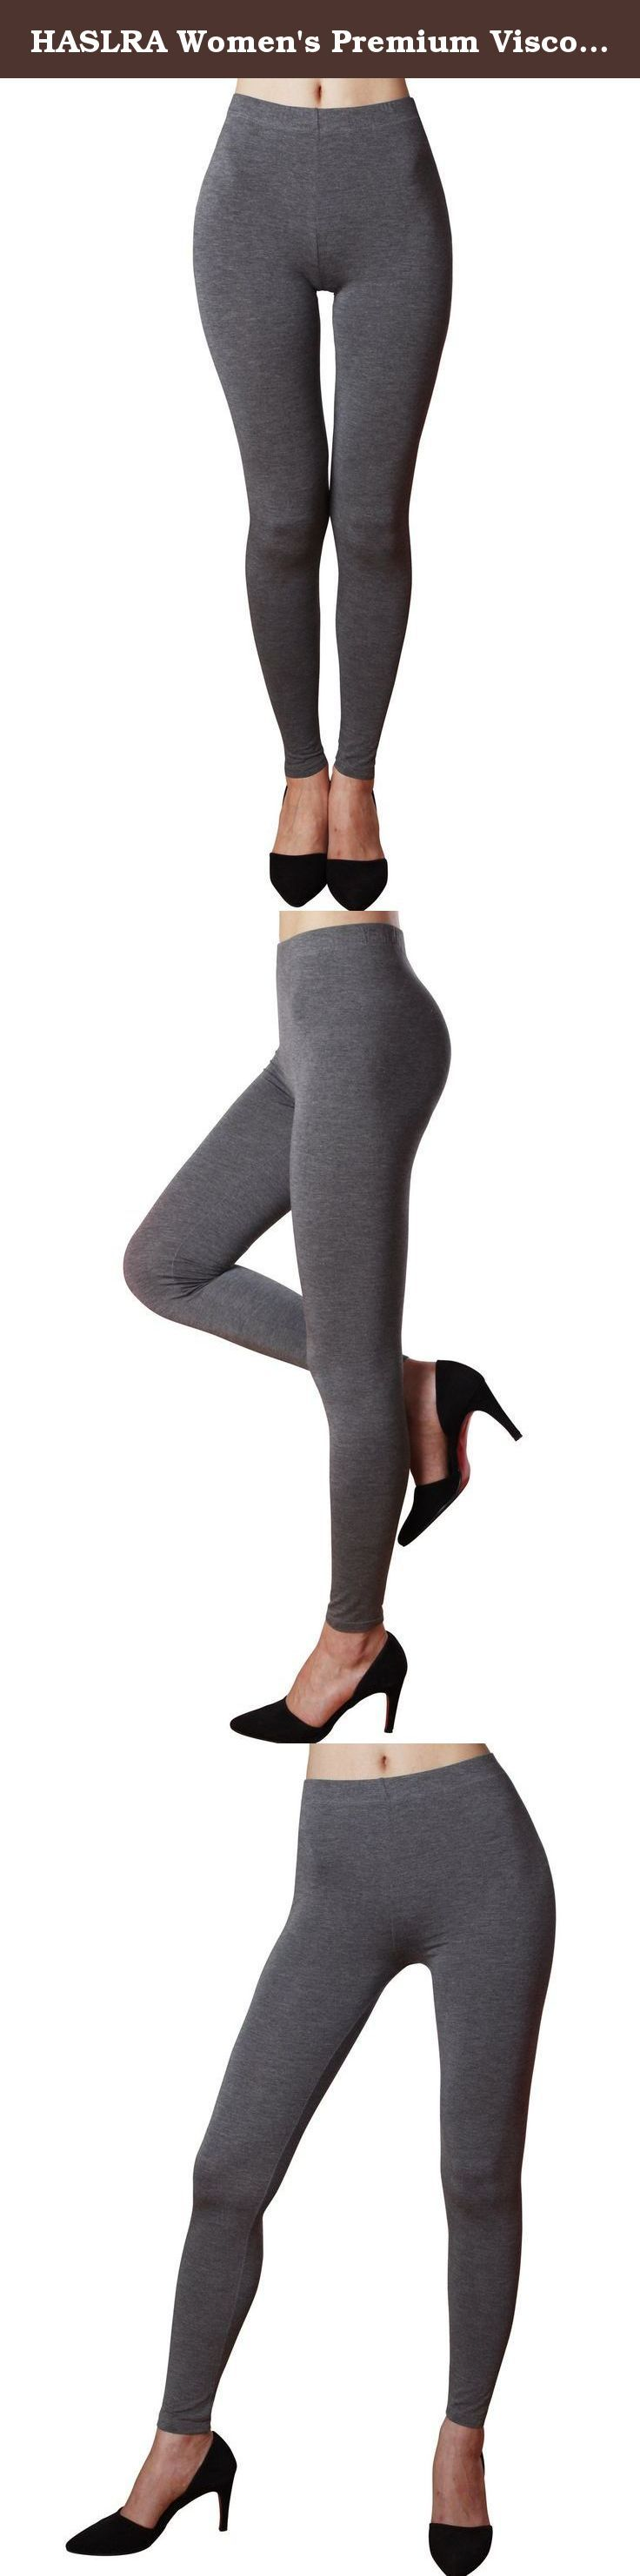 "HASLRA Women's Premium Viscose Rayon Stretch Full Length Leggings (MELANGE CHARCOAL), Medium. PRODUCTS DESCRIPTION: This is a basic design, solid color leggings made of Viscose Rayon material providing ""silk-like"" sheen and luxurious feel HASLRA Solid color Leggings contain high-quality Viscose Rayon material with high elasticity providing your legs a soft, highly resilient feel The highly stretchable and durable waistband allows maximum comfort all-day long The genuine, high-quality..."